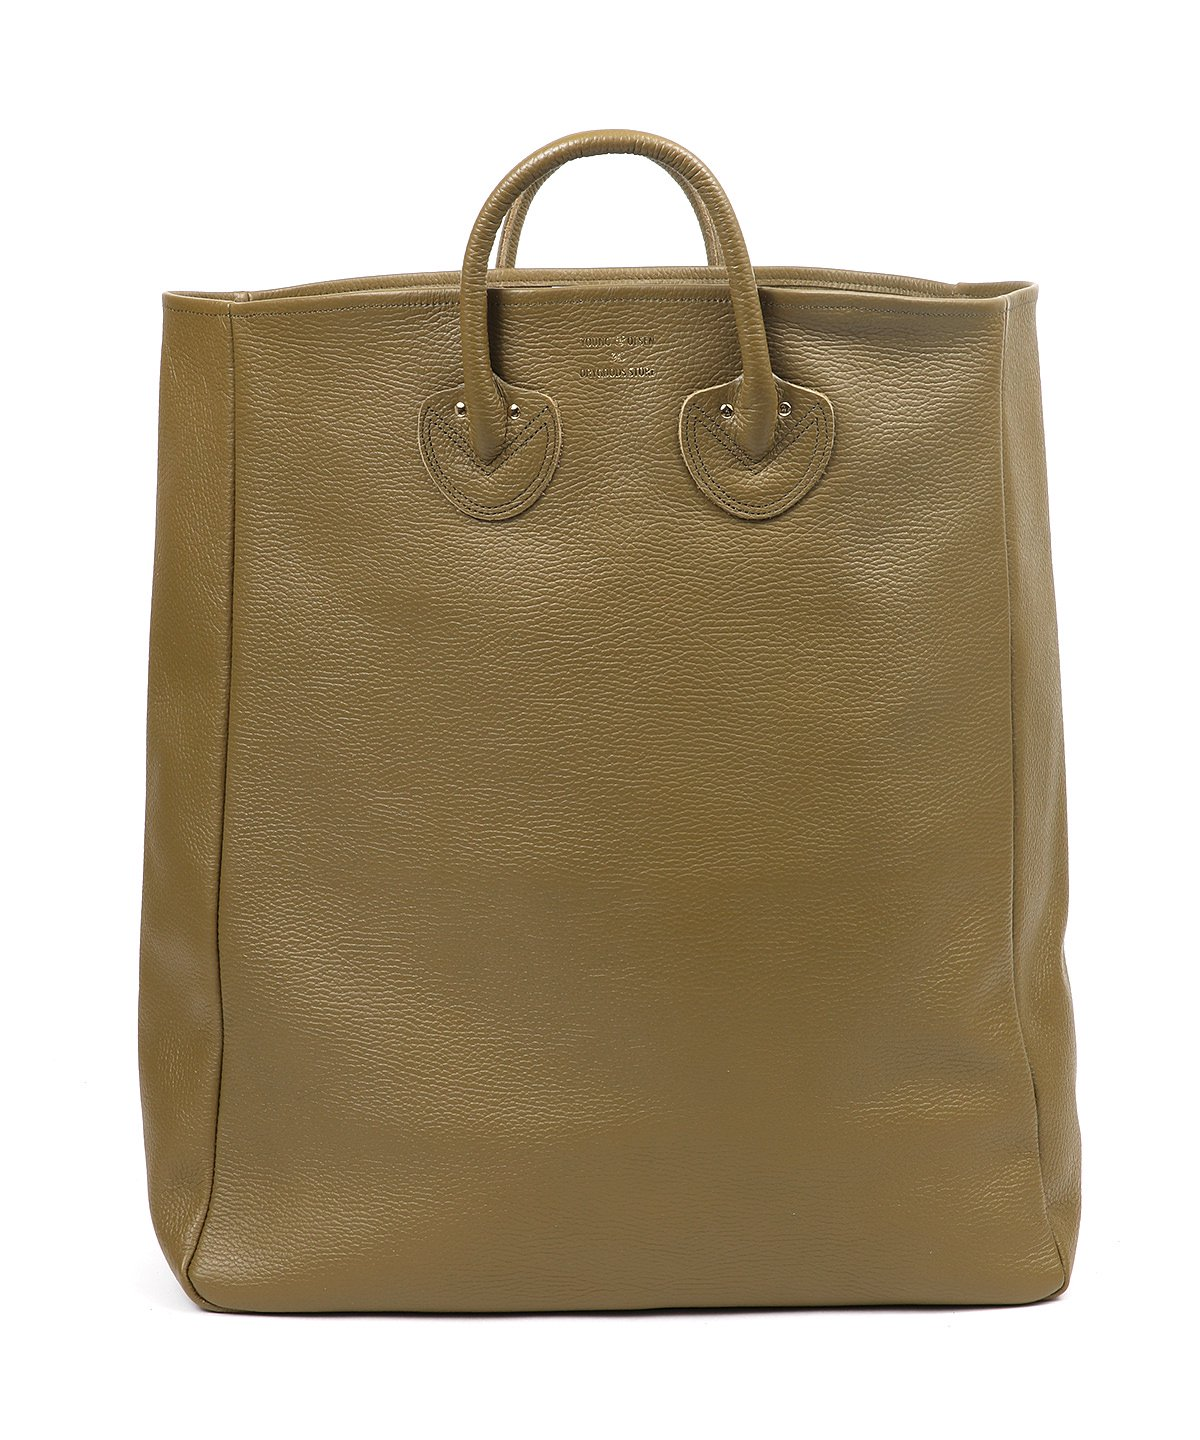 EMBOSSED LEATHER TOTE L